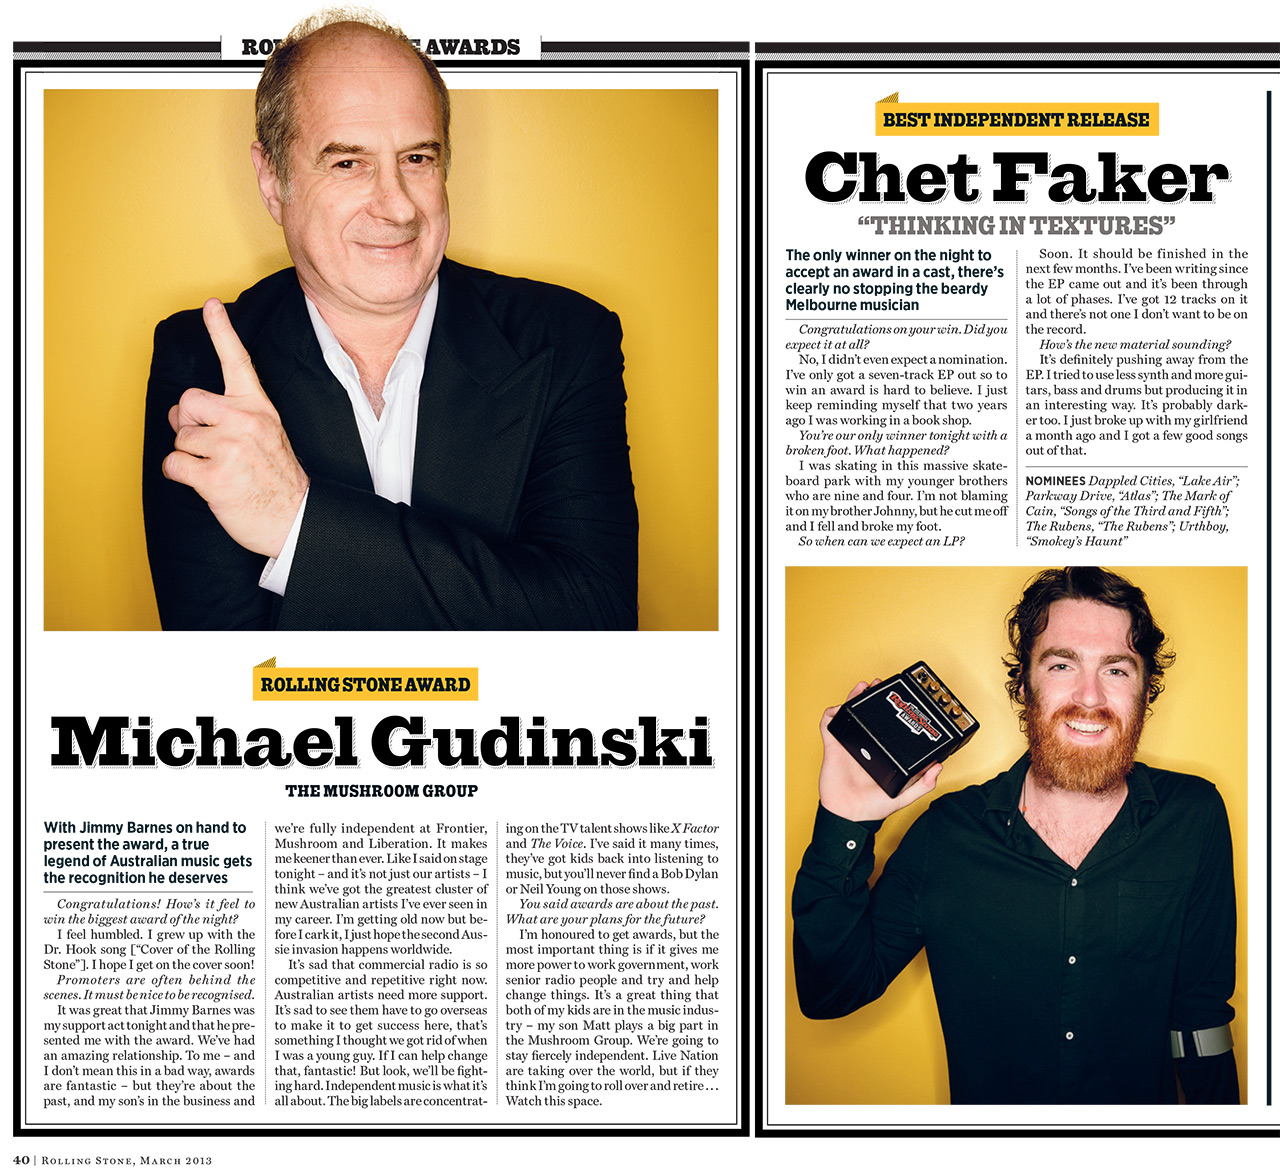 Award Winners Michael Gudinski and Chet Faker